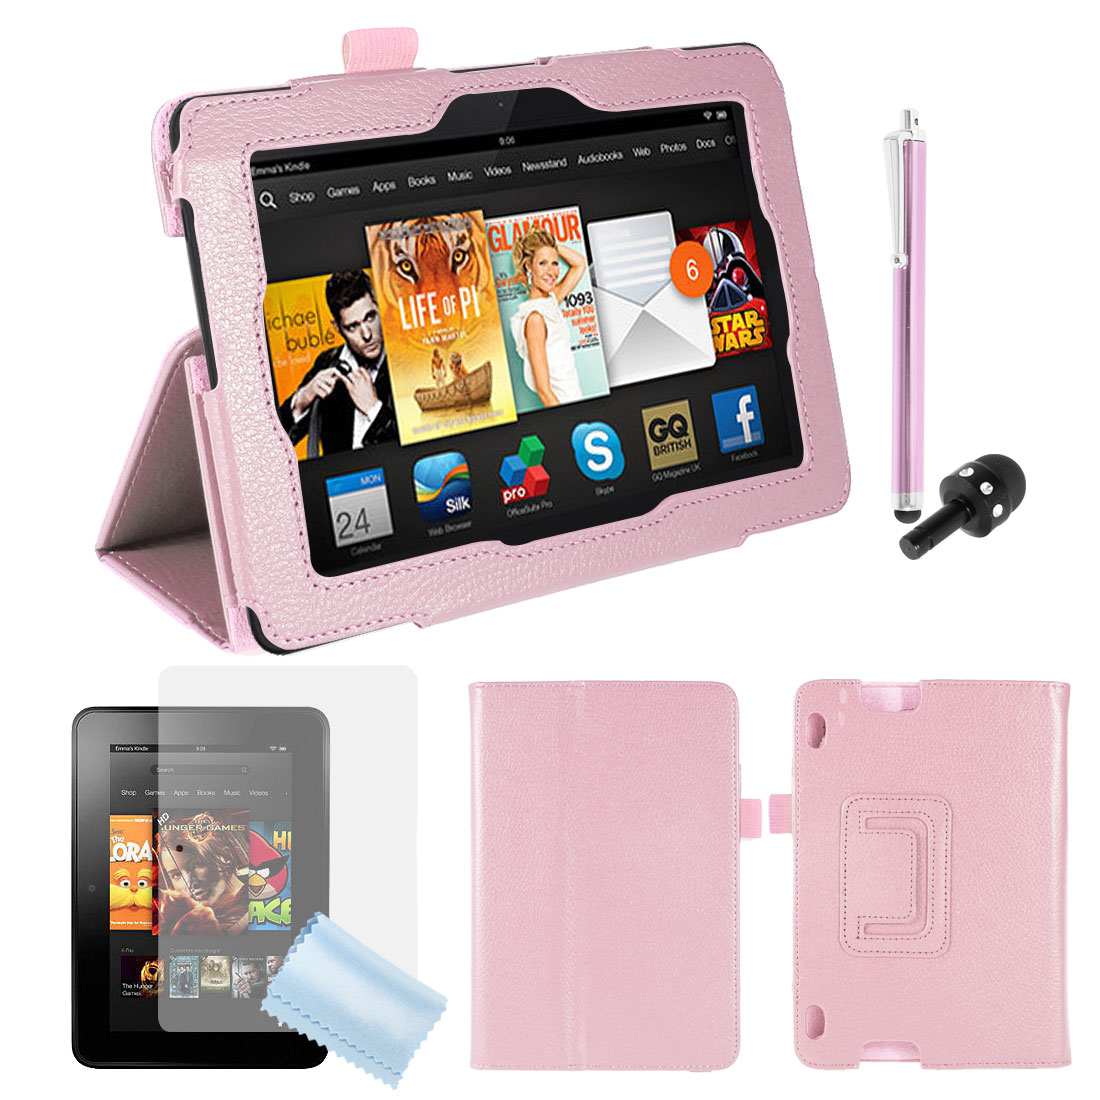 PU Leather Stand Case Cover Pink + Screen Guard + Stylus for Kindle Fire HDX 7""